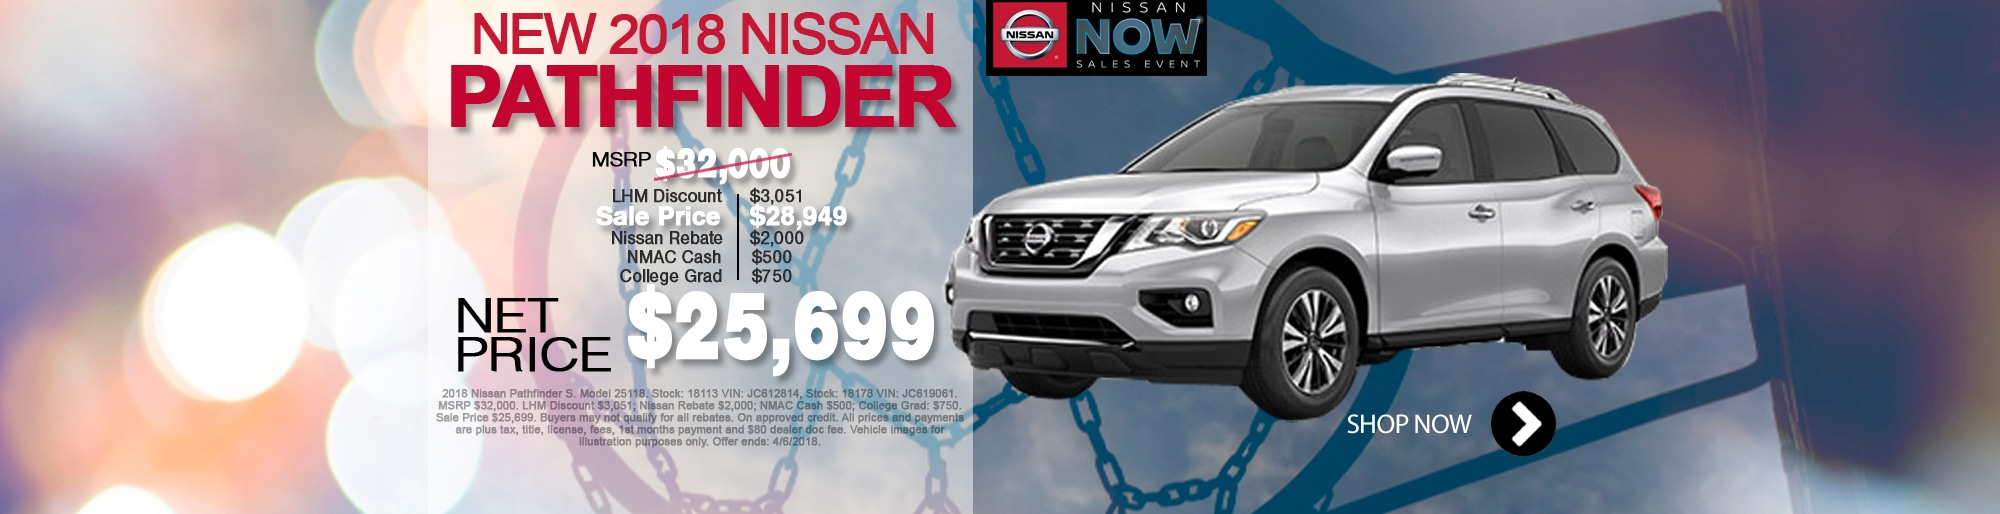 New Nissan Pathfinder For Sale March Special Net Price $25,699 Larry H Miller Nissan Corona